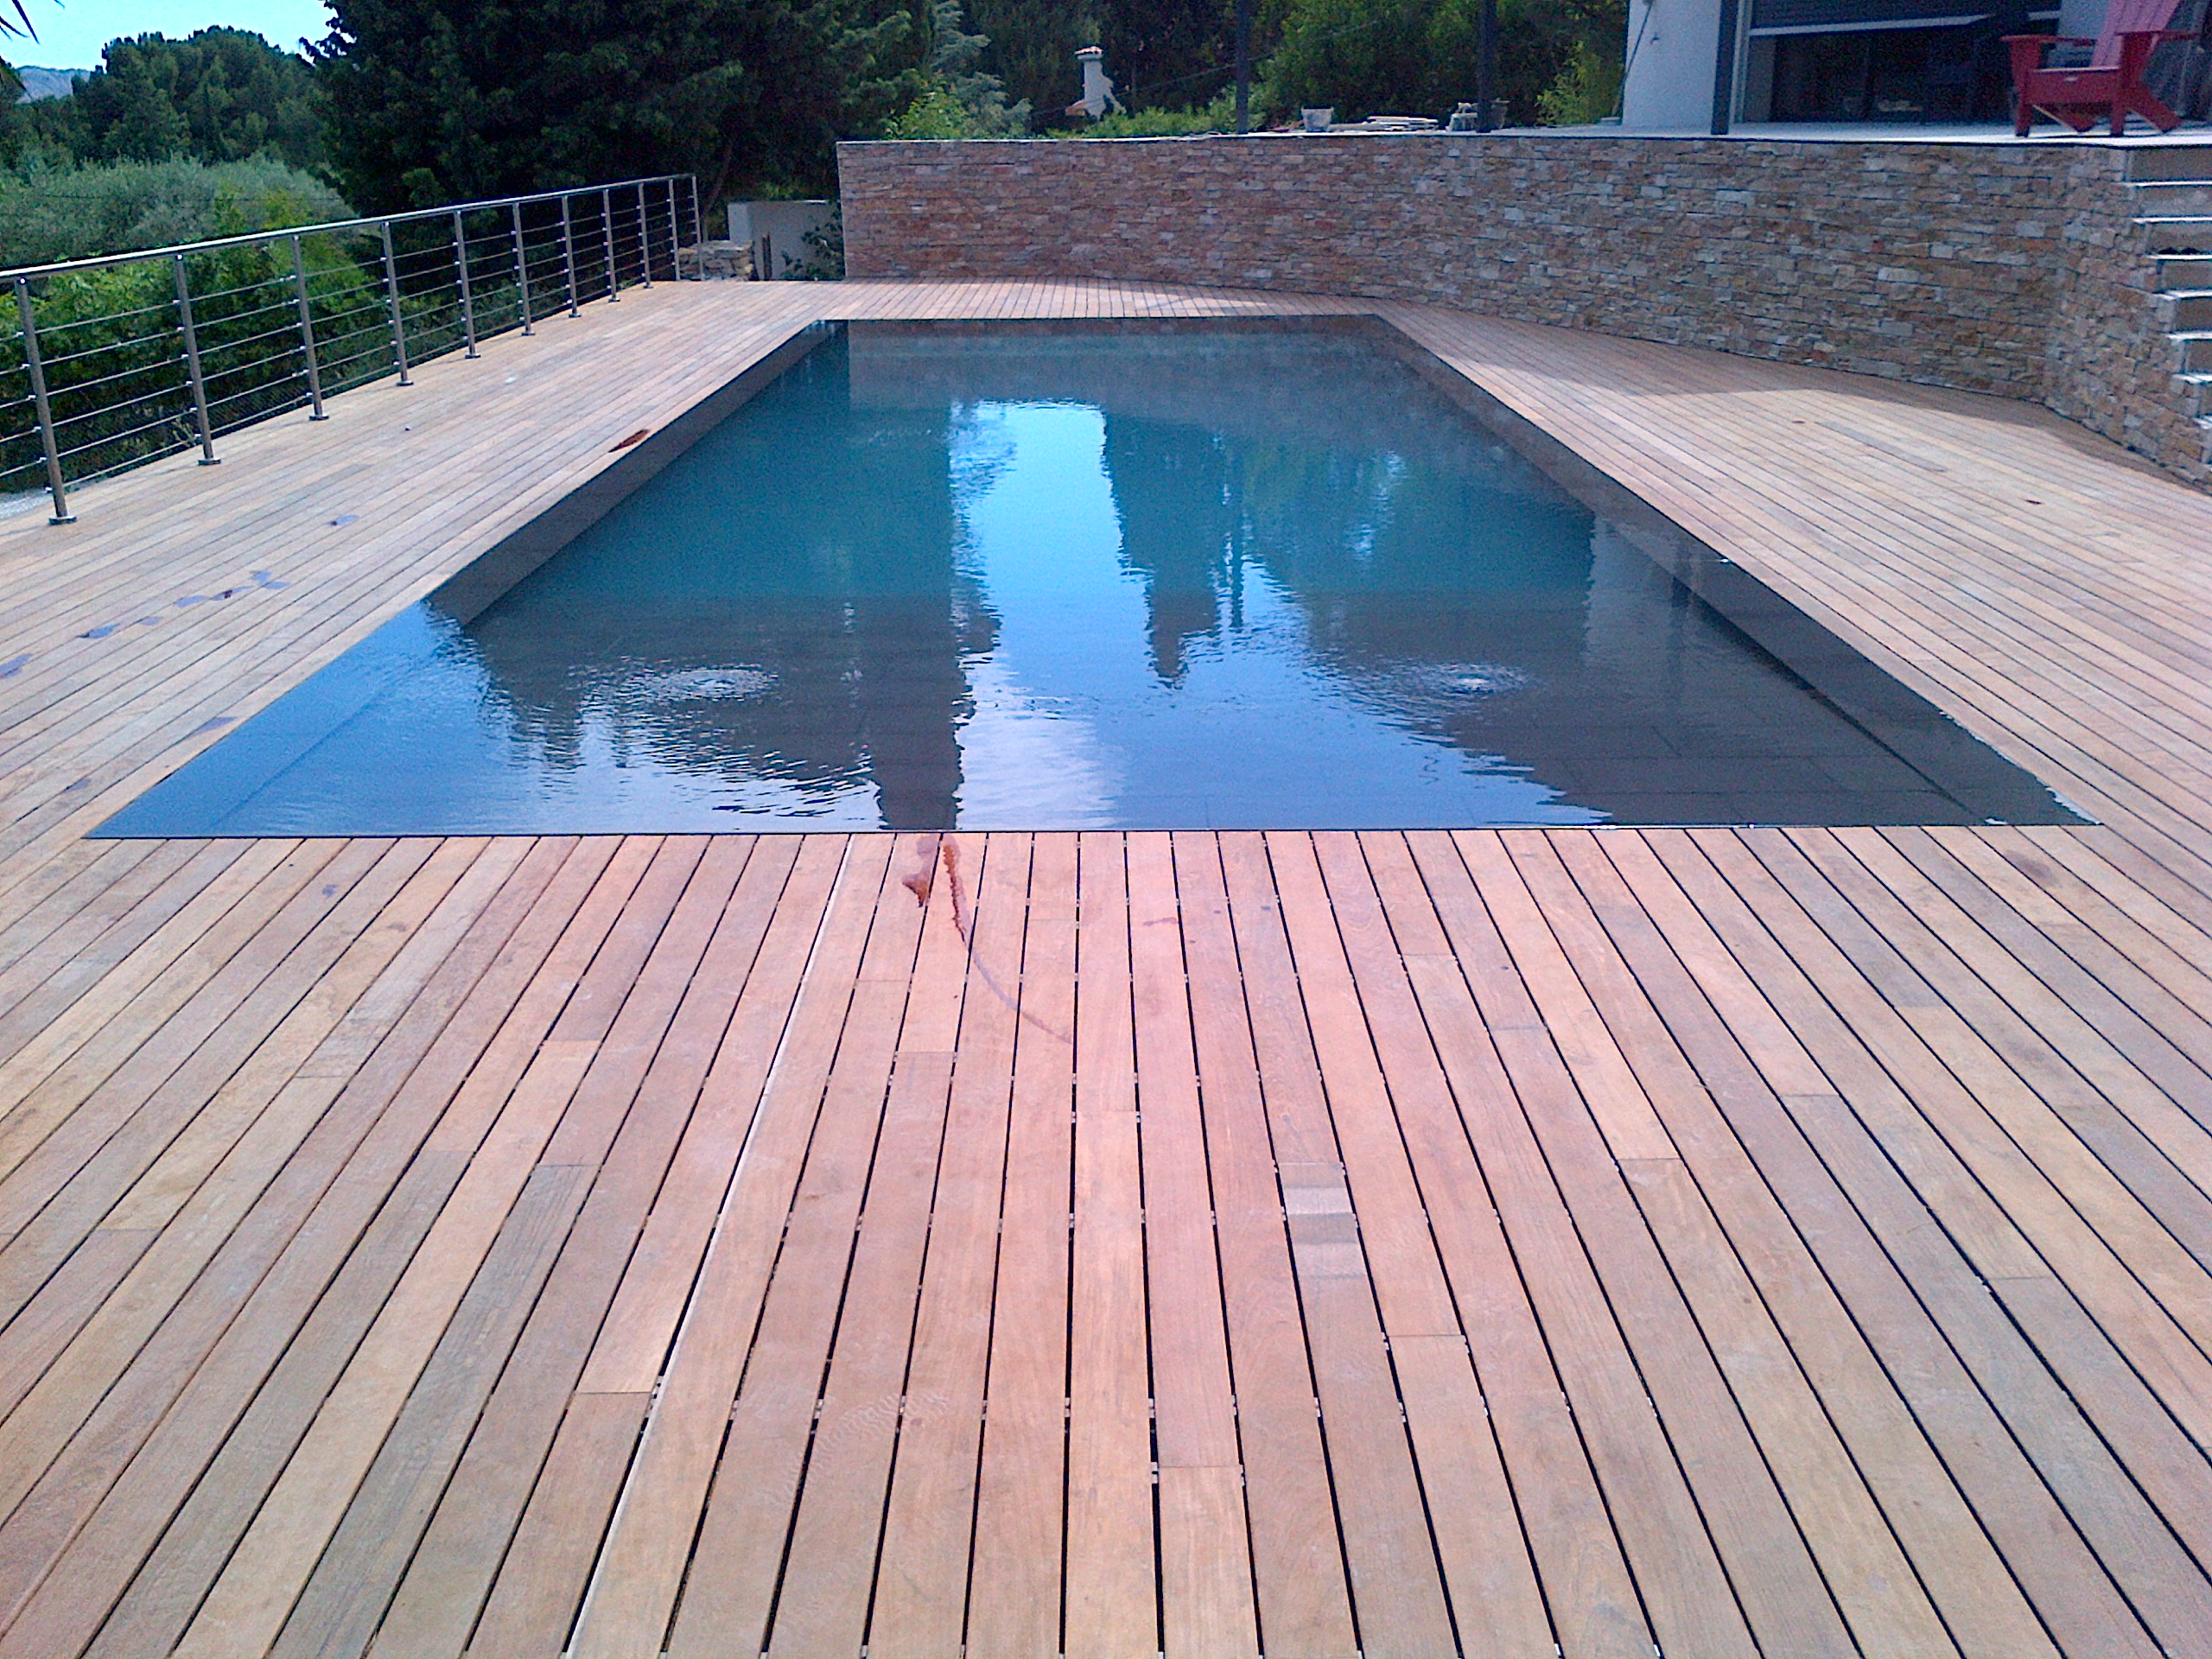 La piscine aquaset piscines traditionnelles brignoles for Construction piscine 80